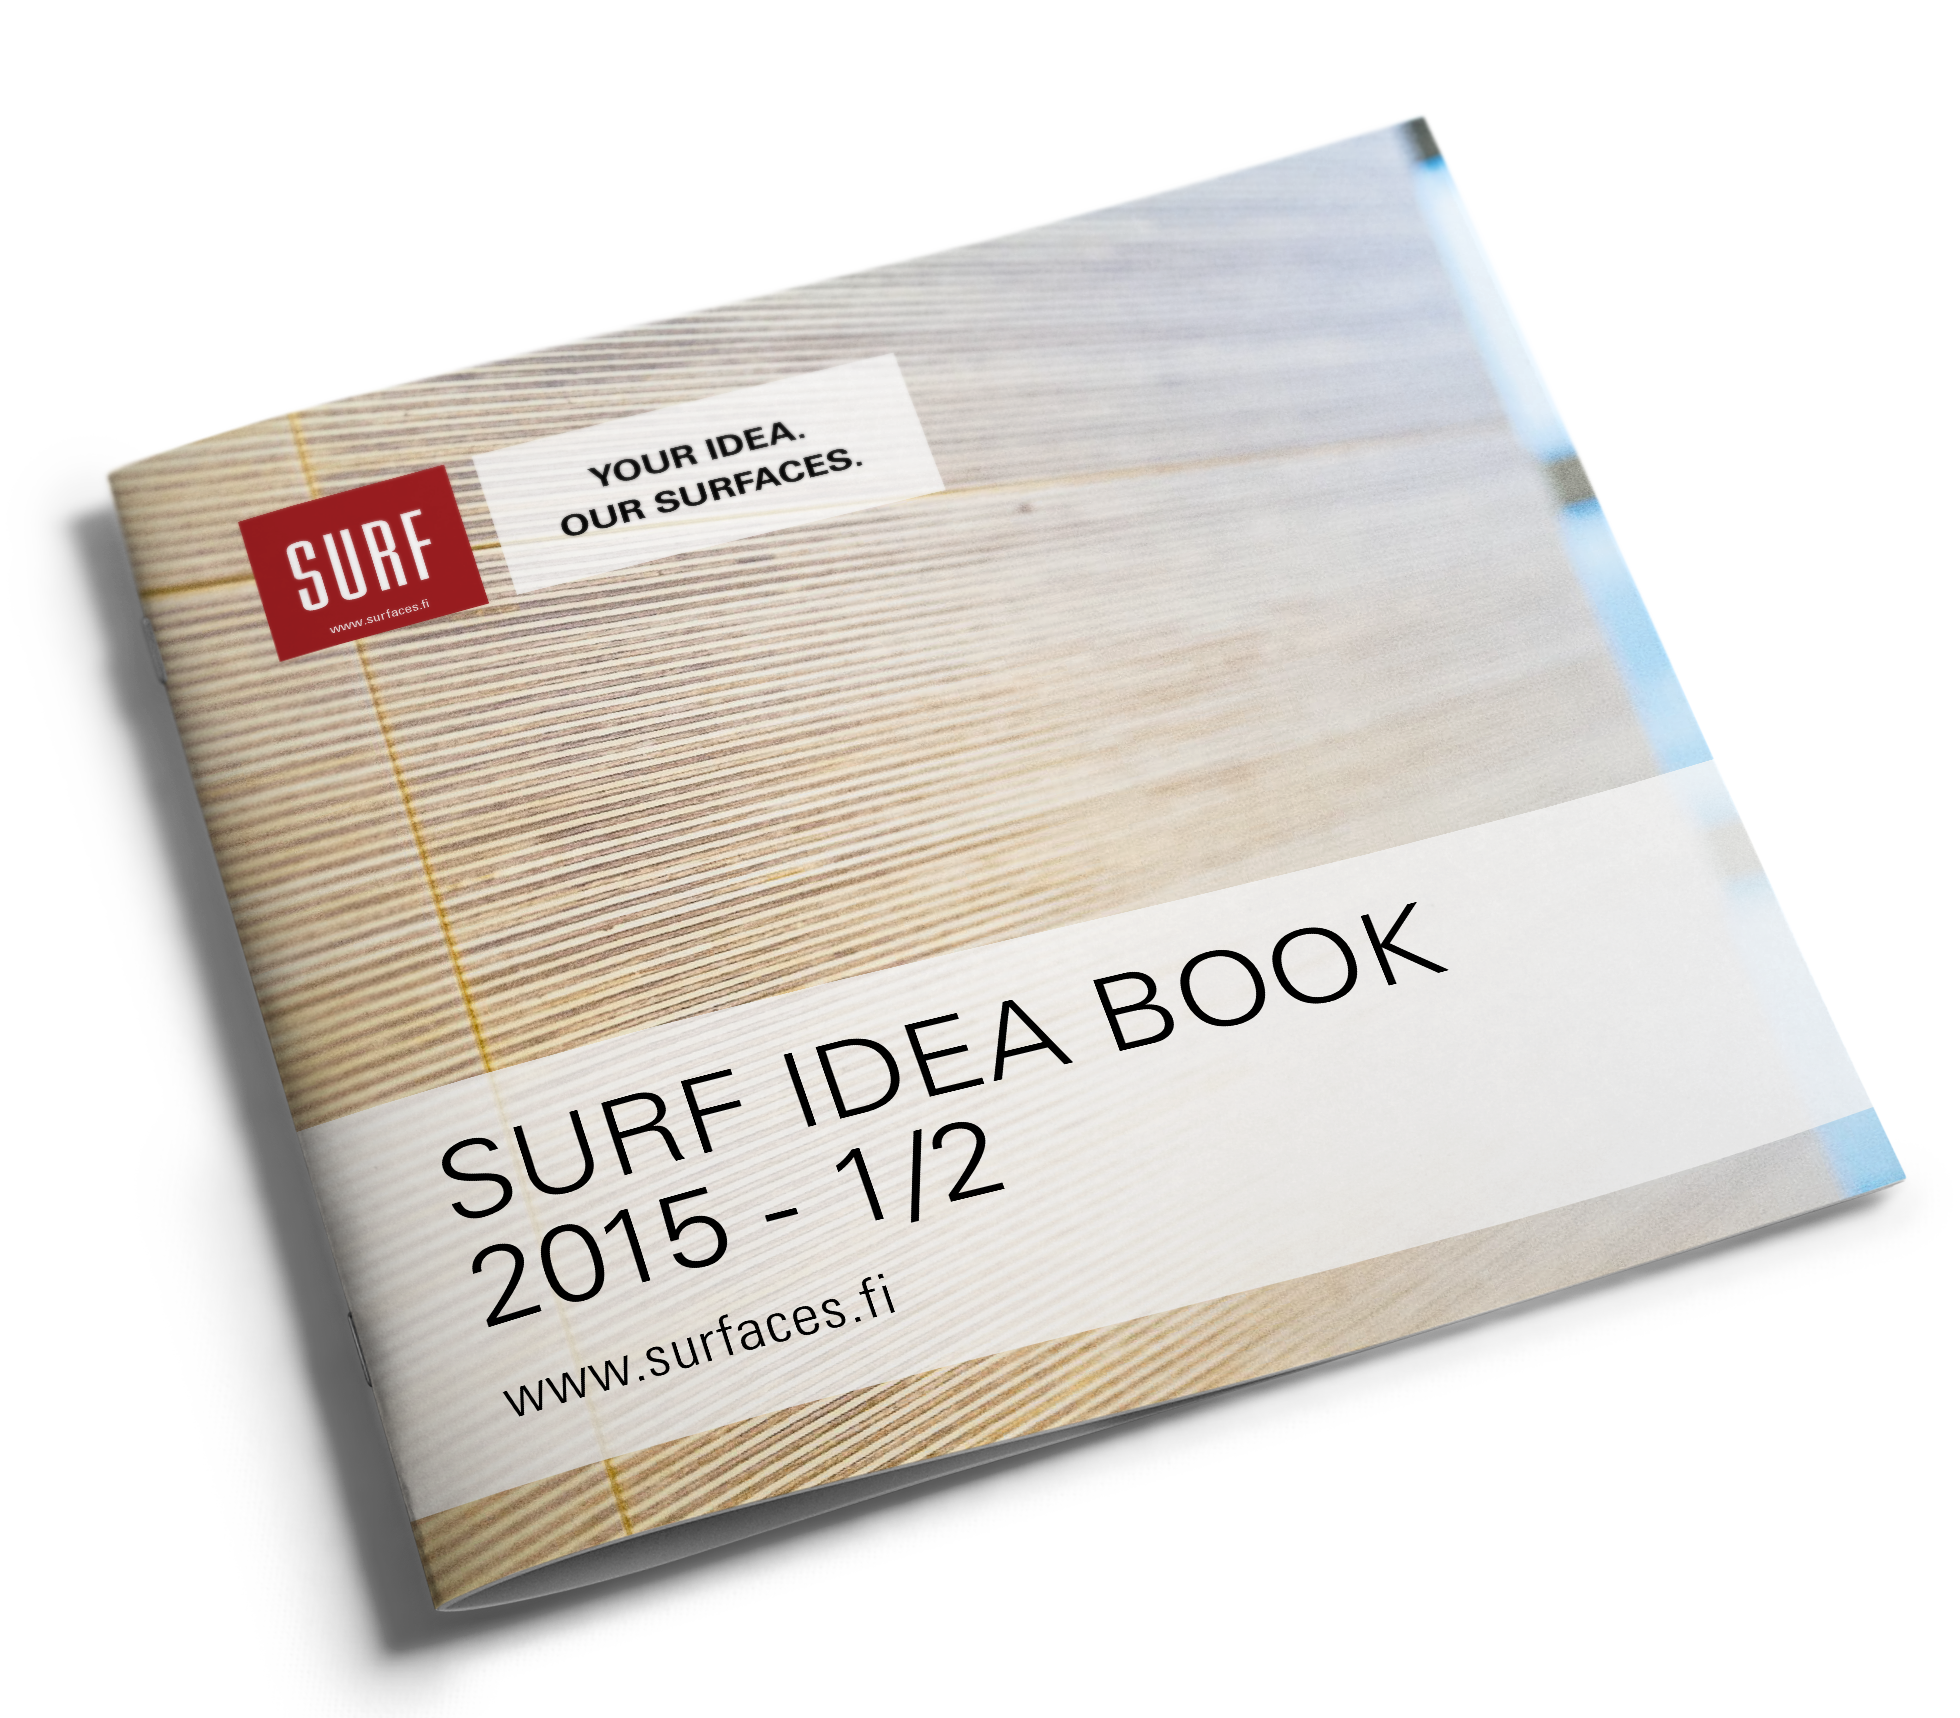 SURF Idea Book 2015 - 1/2